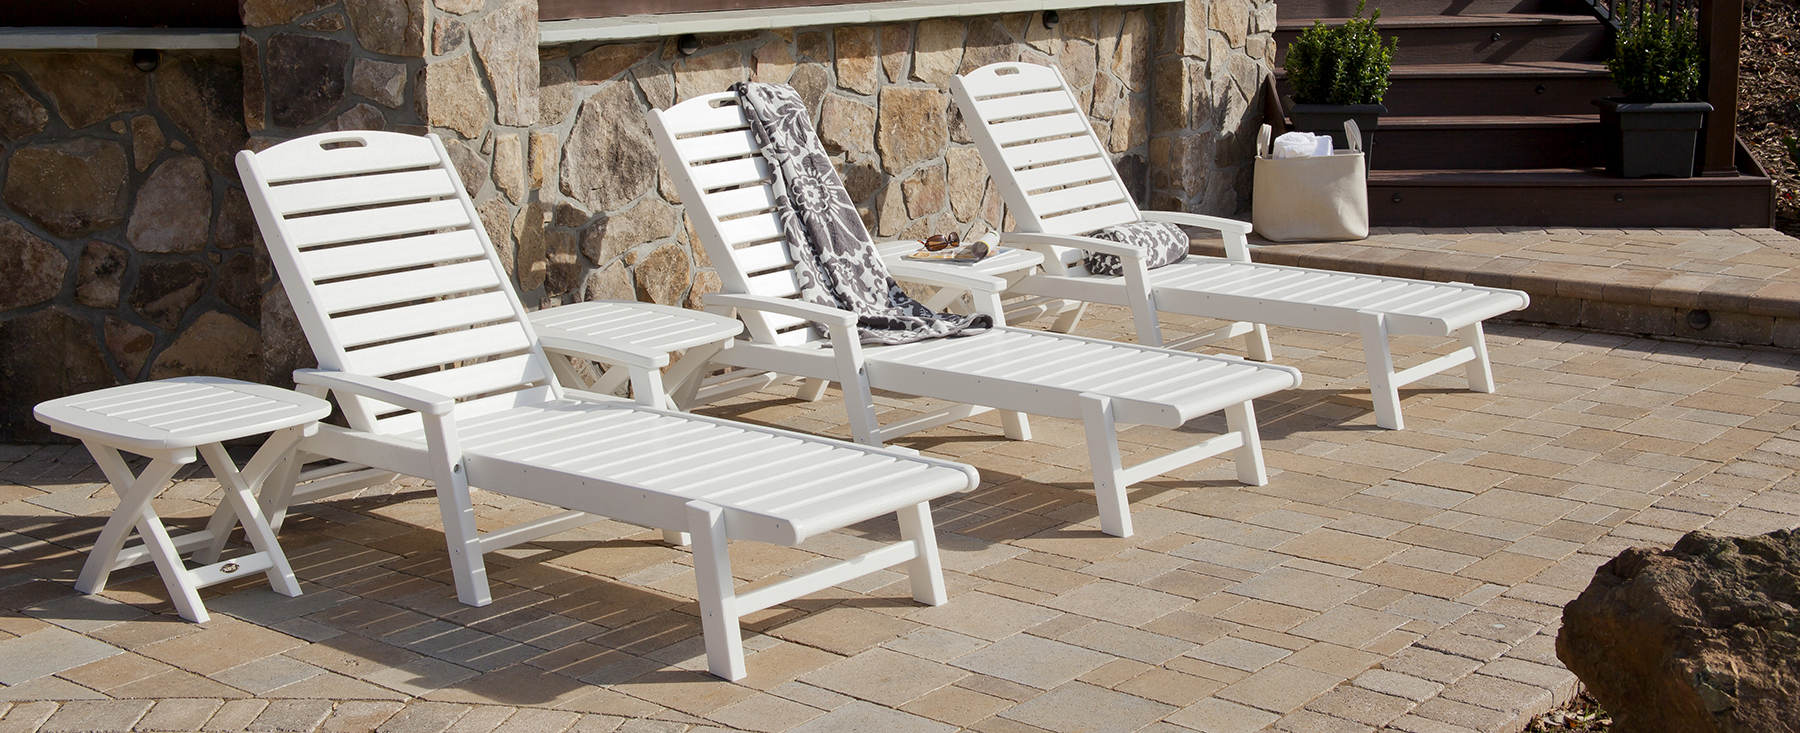 The Shopper's Guide To Buying An Outdoor Chaise Lounge For Current Resin Wicker Aluminum Multi Position Chaise Lounges (View 23 of 25)